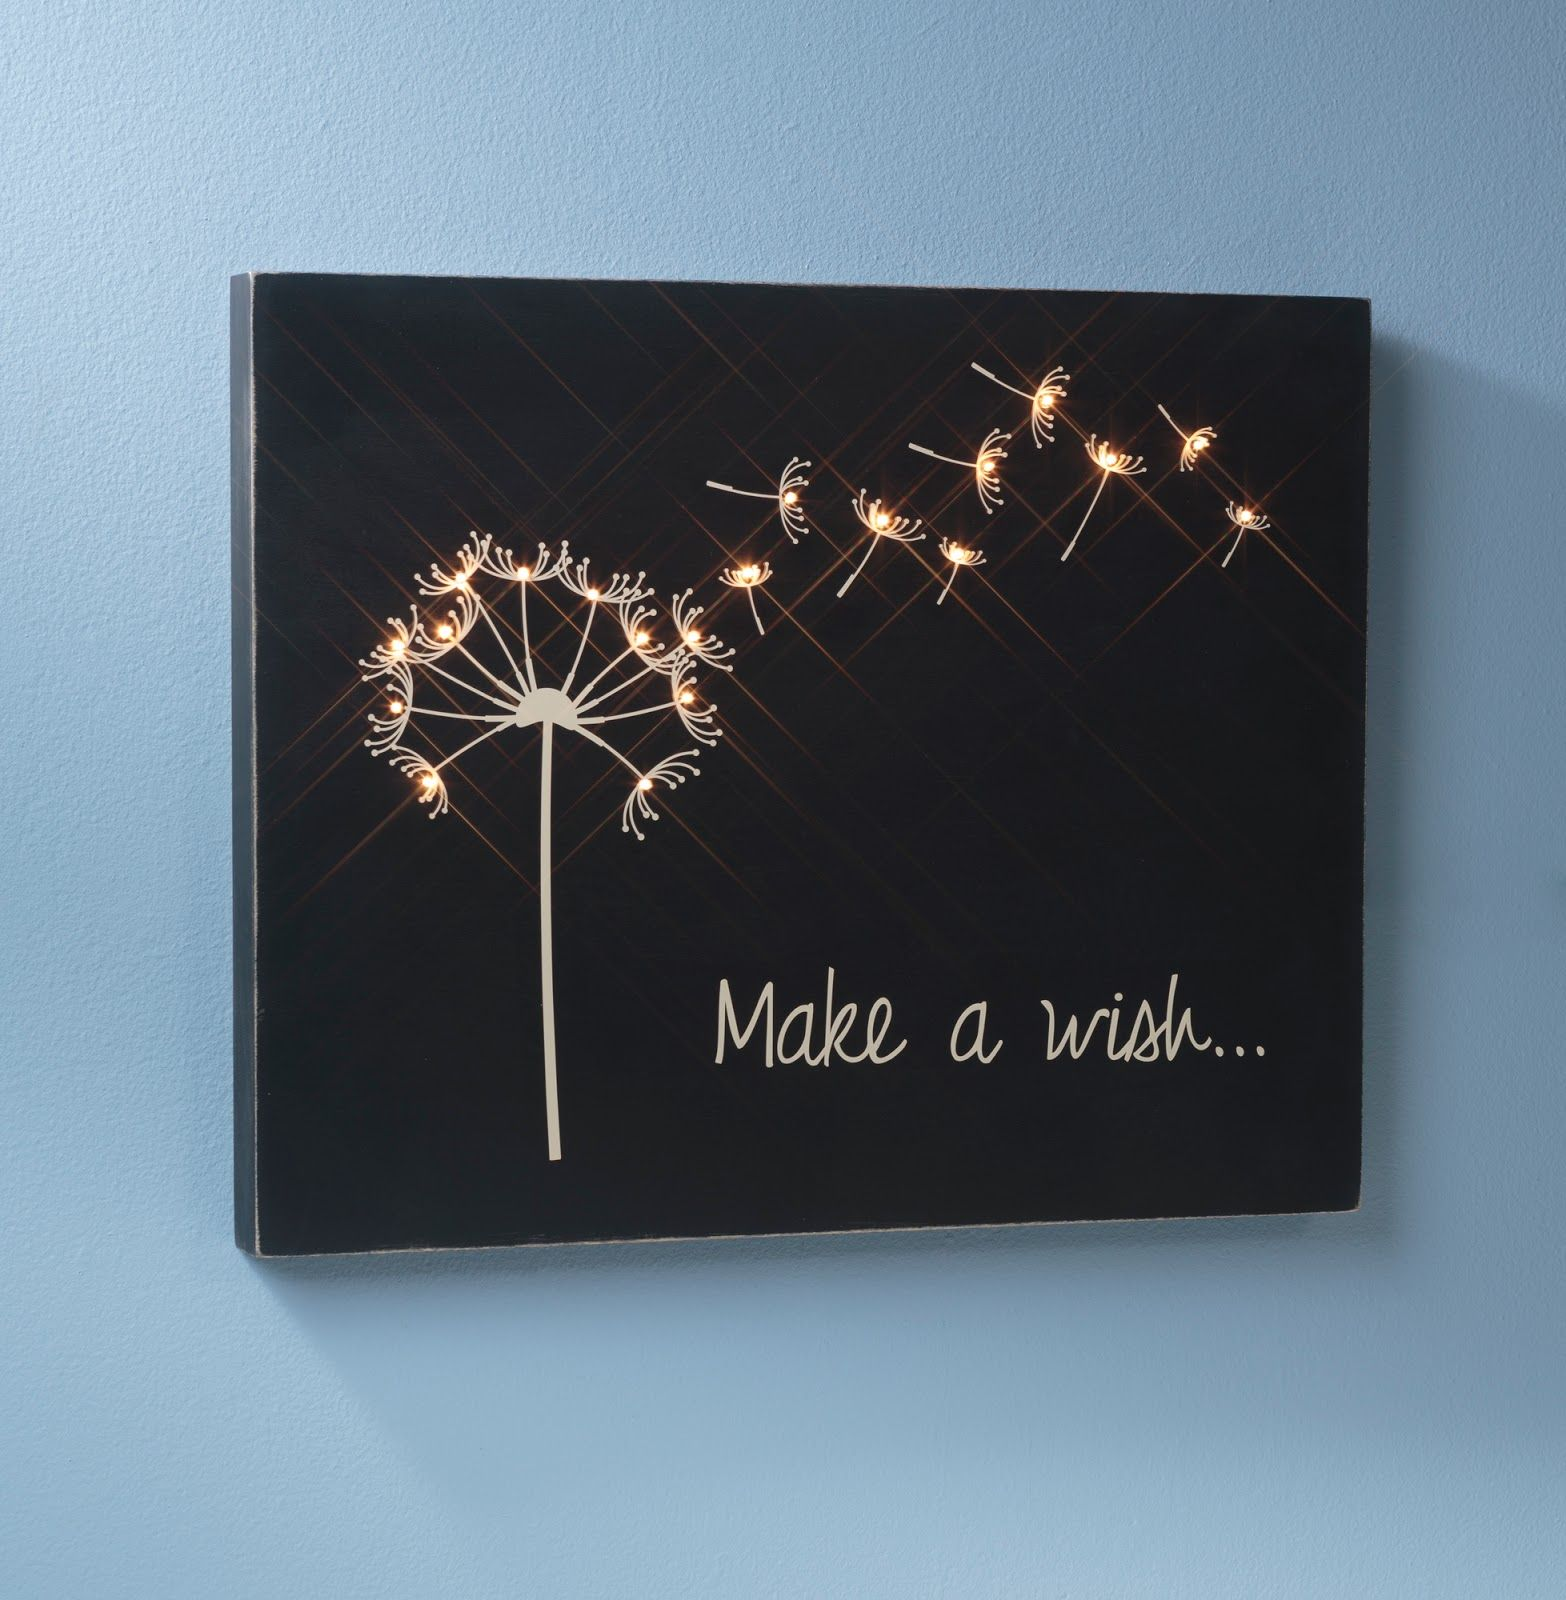 Make a wish wooden canvas created by sarah owens for craftwarehouse